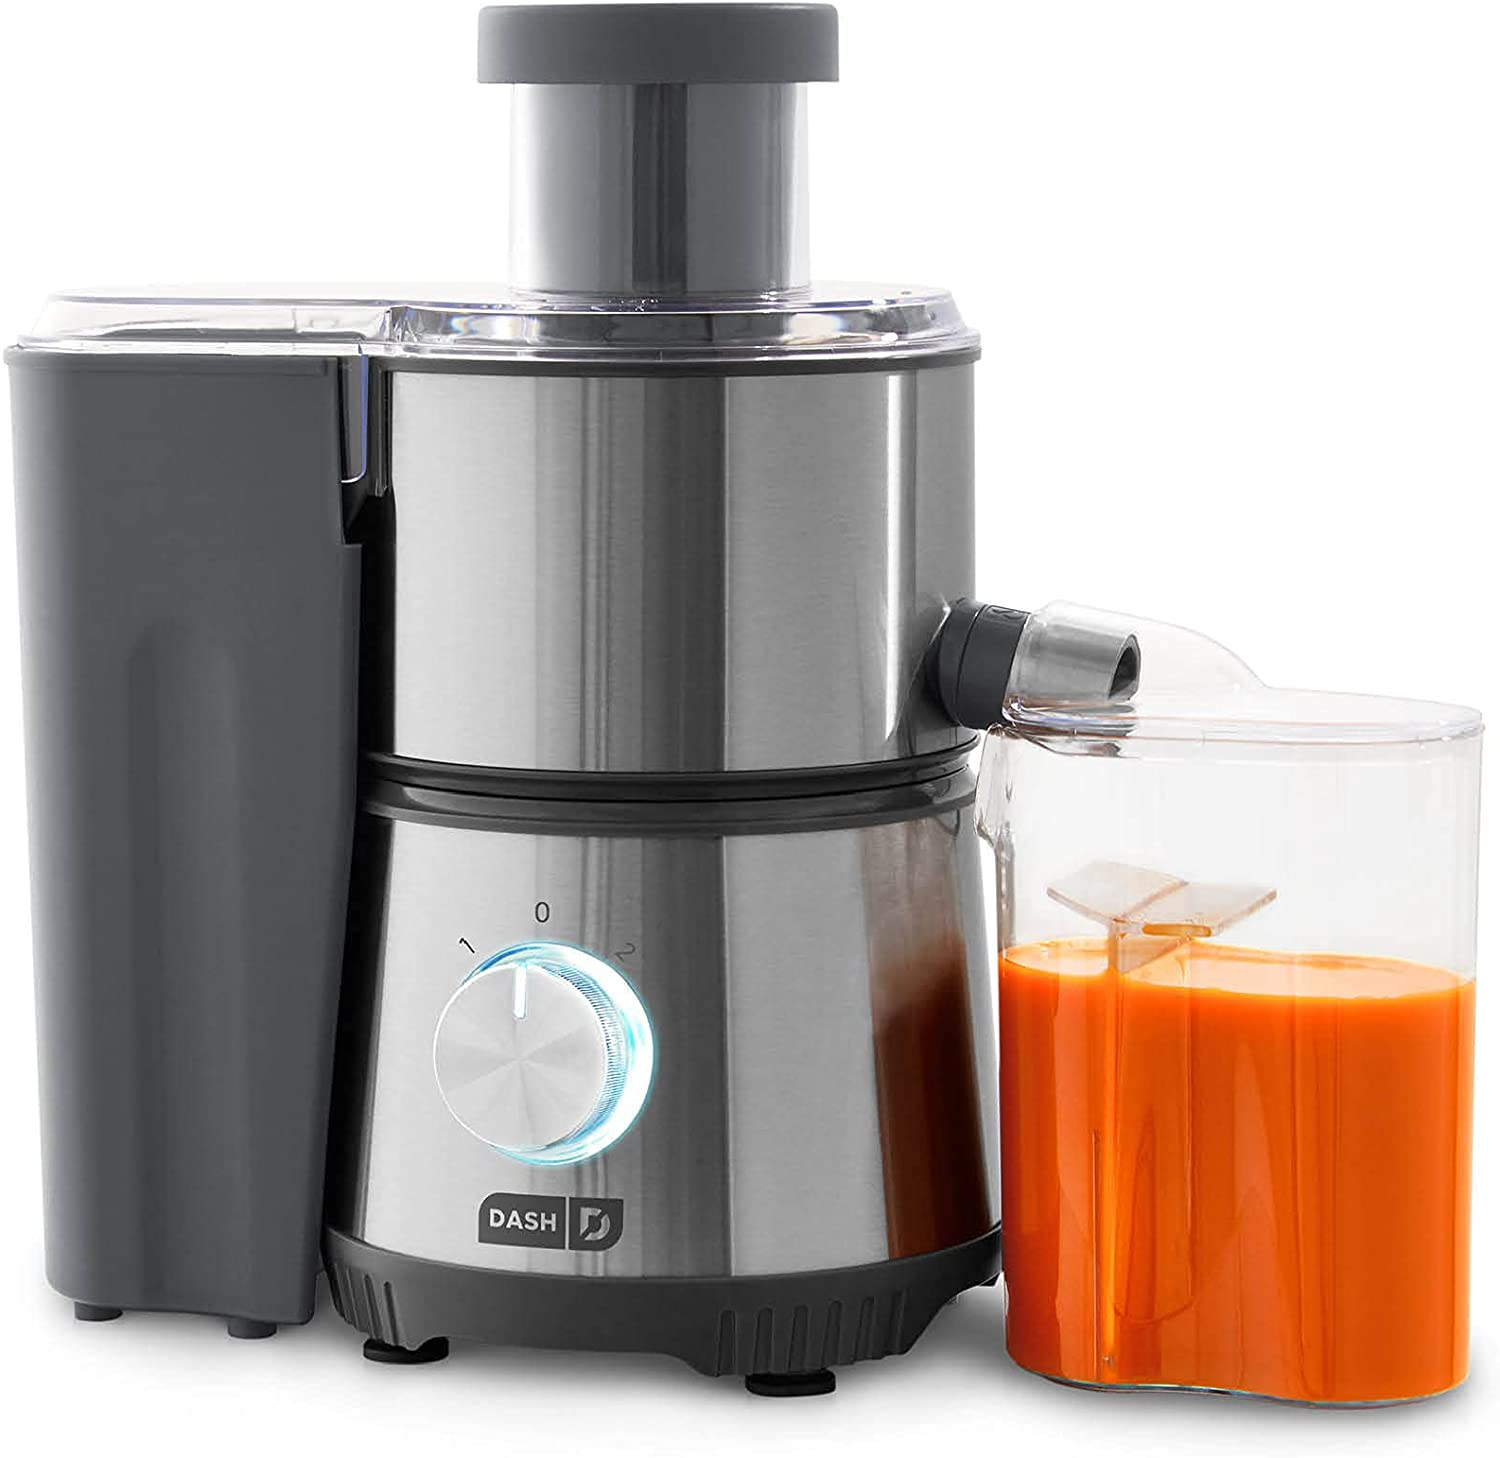 Dash Compact Centrifugal Juicer, Easy Clean Extractor Press Juicing Machine, 2-Speed, Wide 2